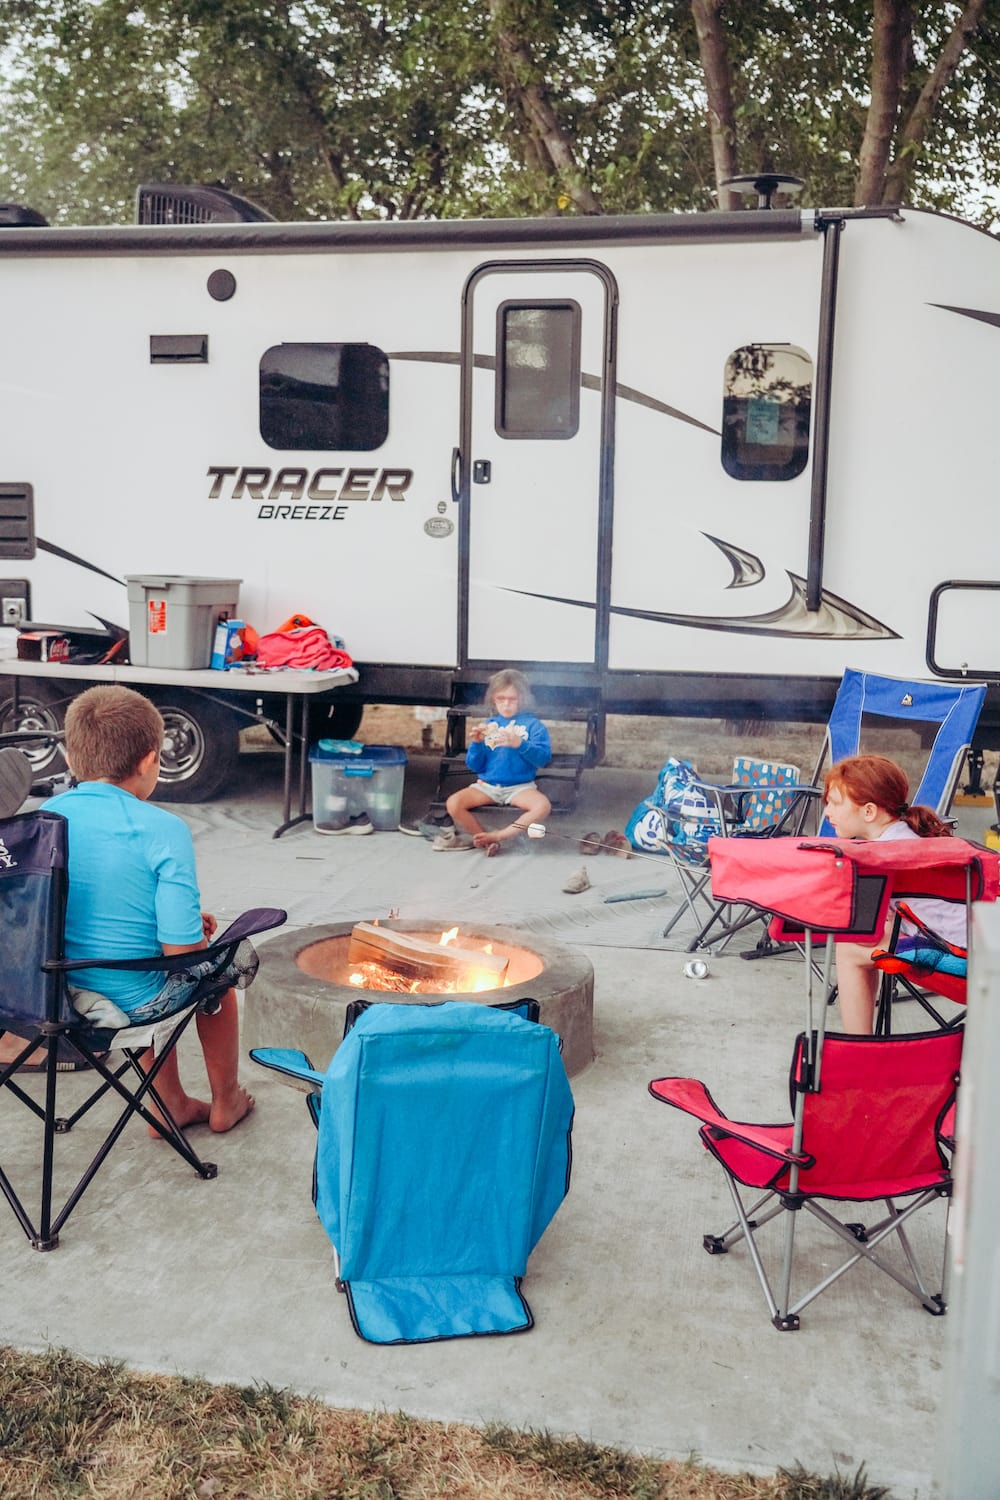 Three kids sitting our a campfire, in front of a travel trailer.